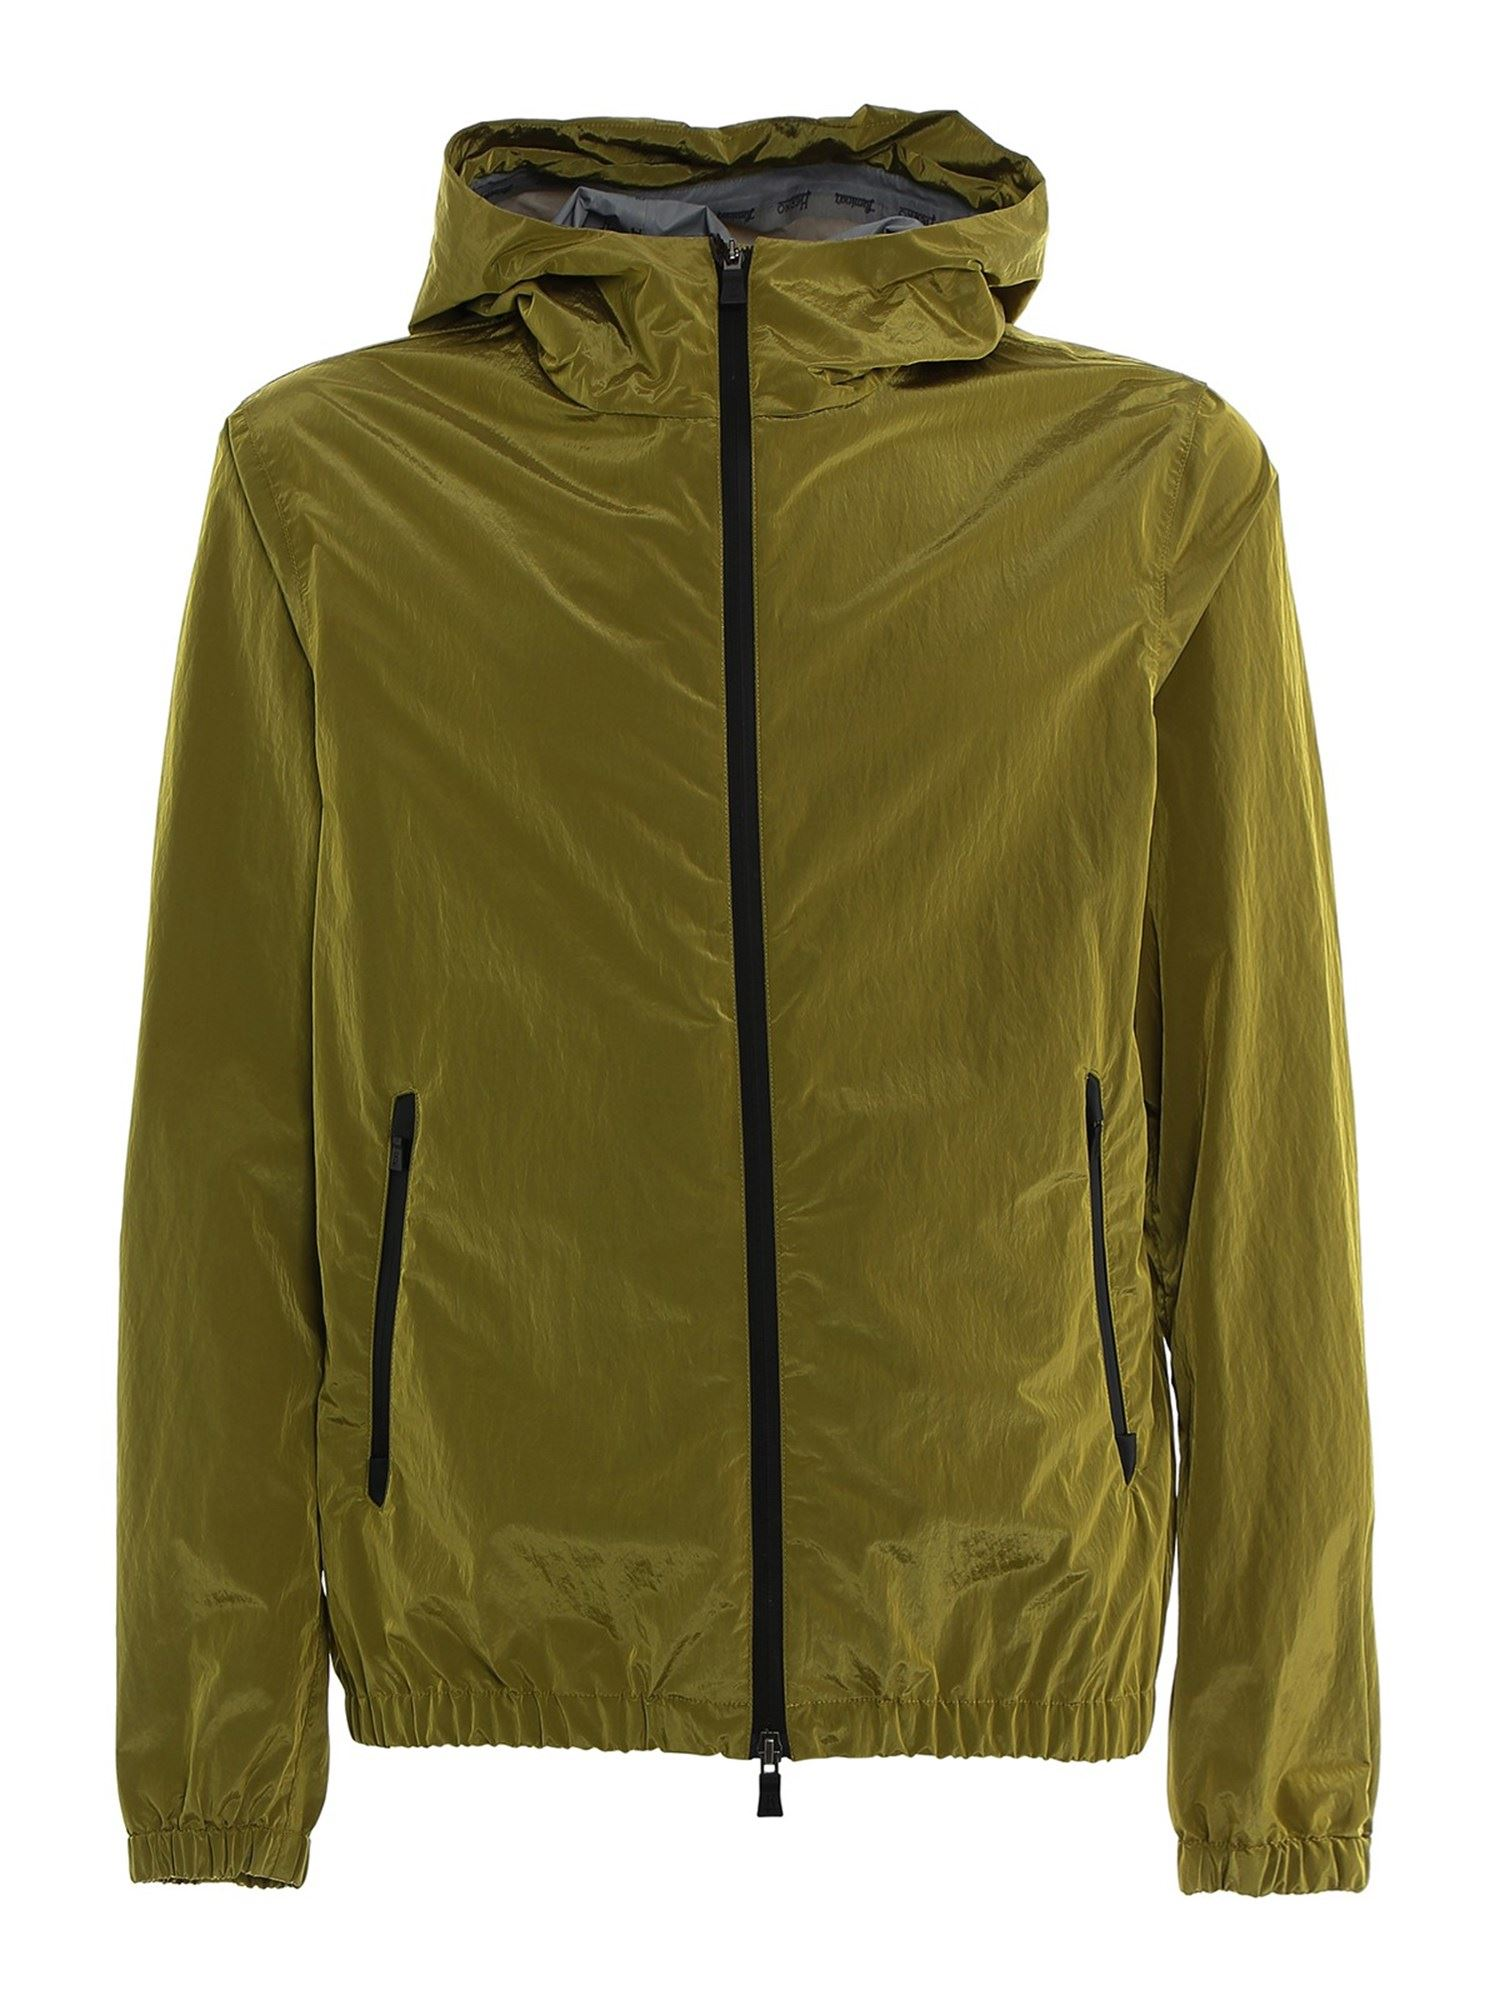 Herno TECH FABRIC JACKET IN YELLOW